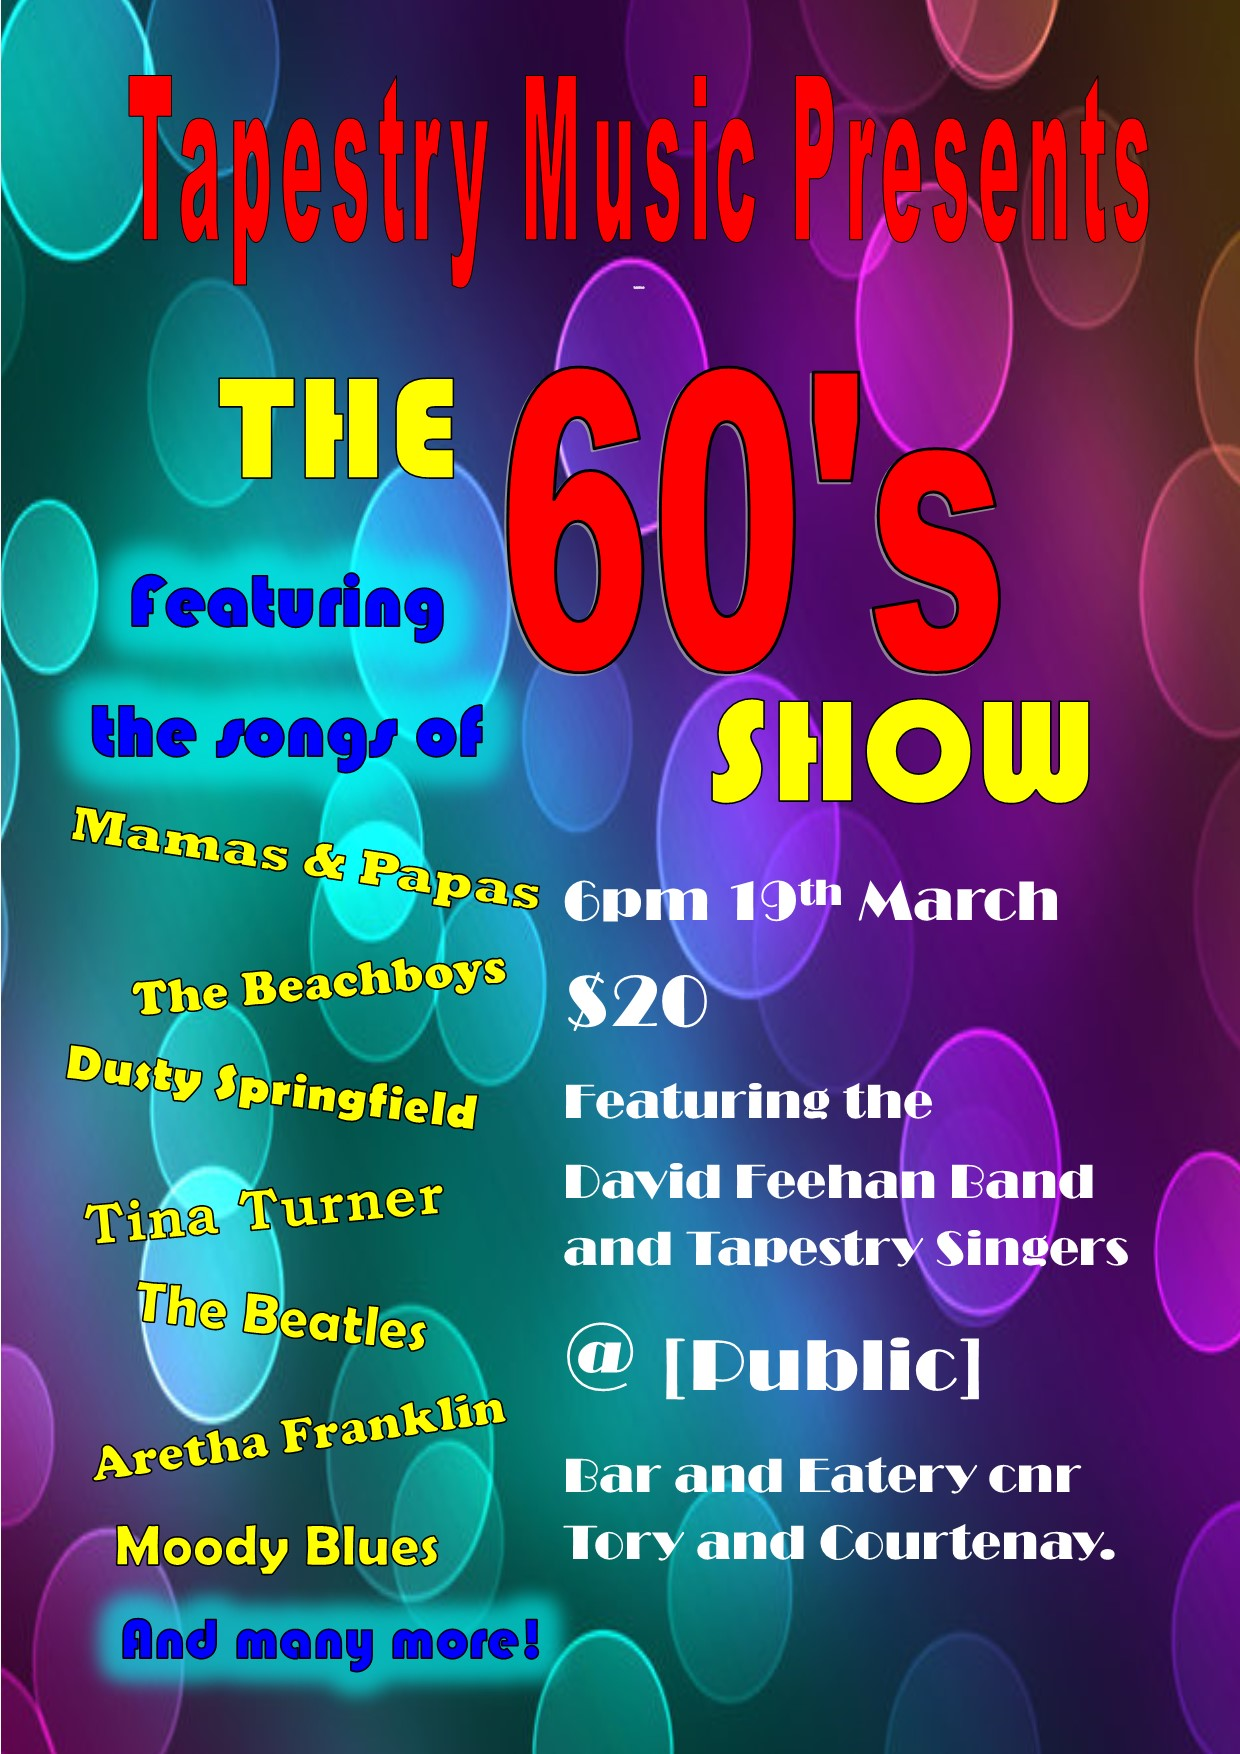 Tapestry Music Presents: The 60s Show!